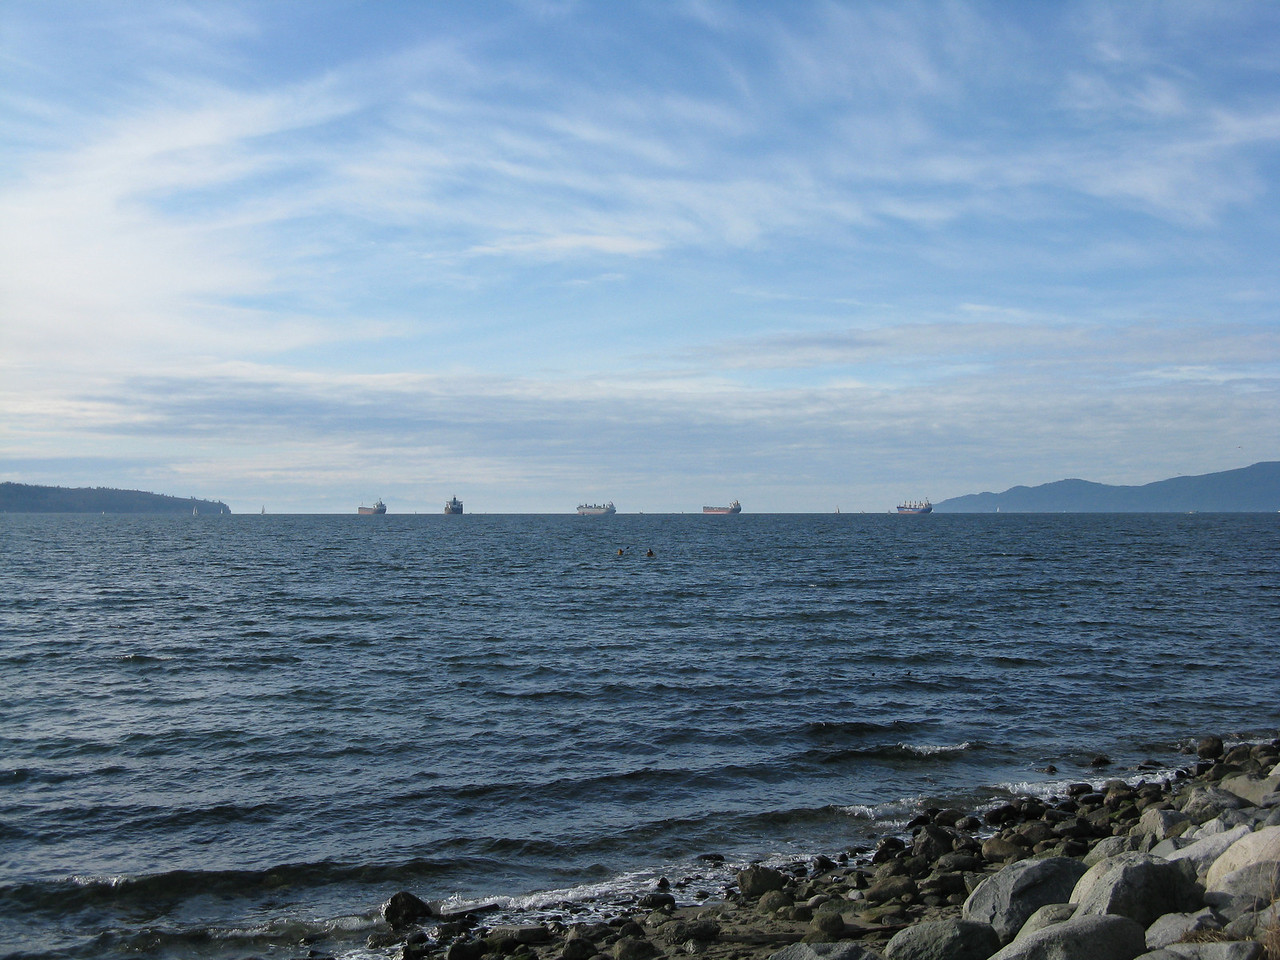 Burrard Inlet from English Bay on the west side of the park.